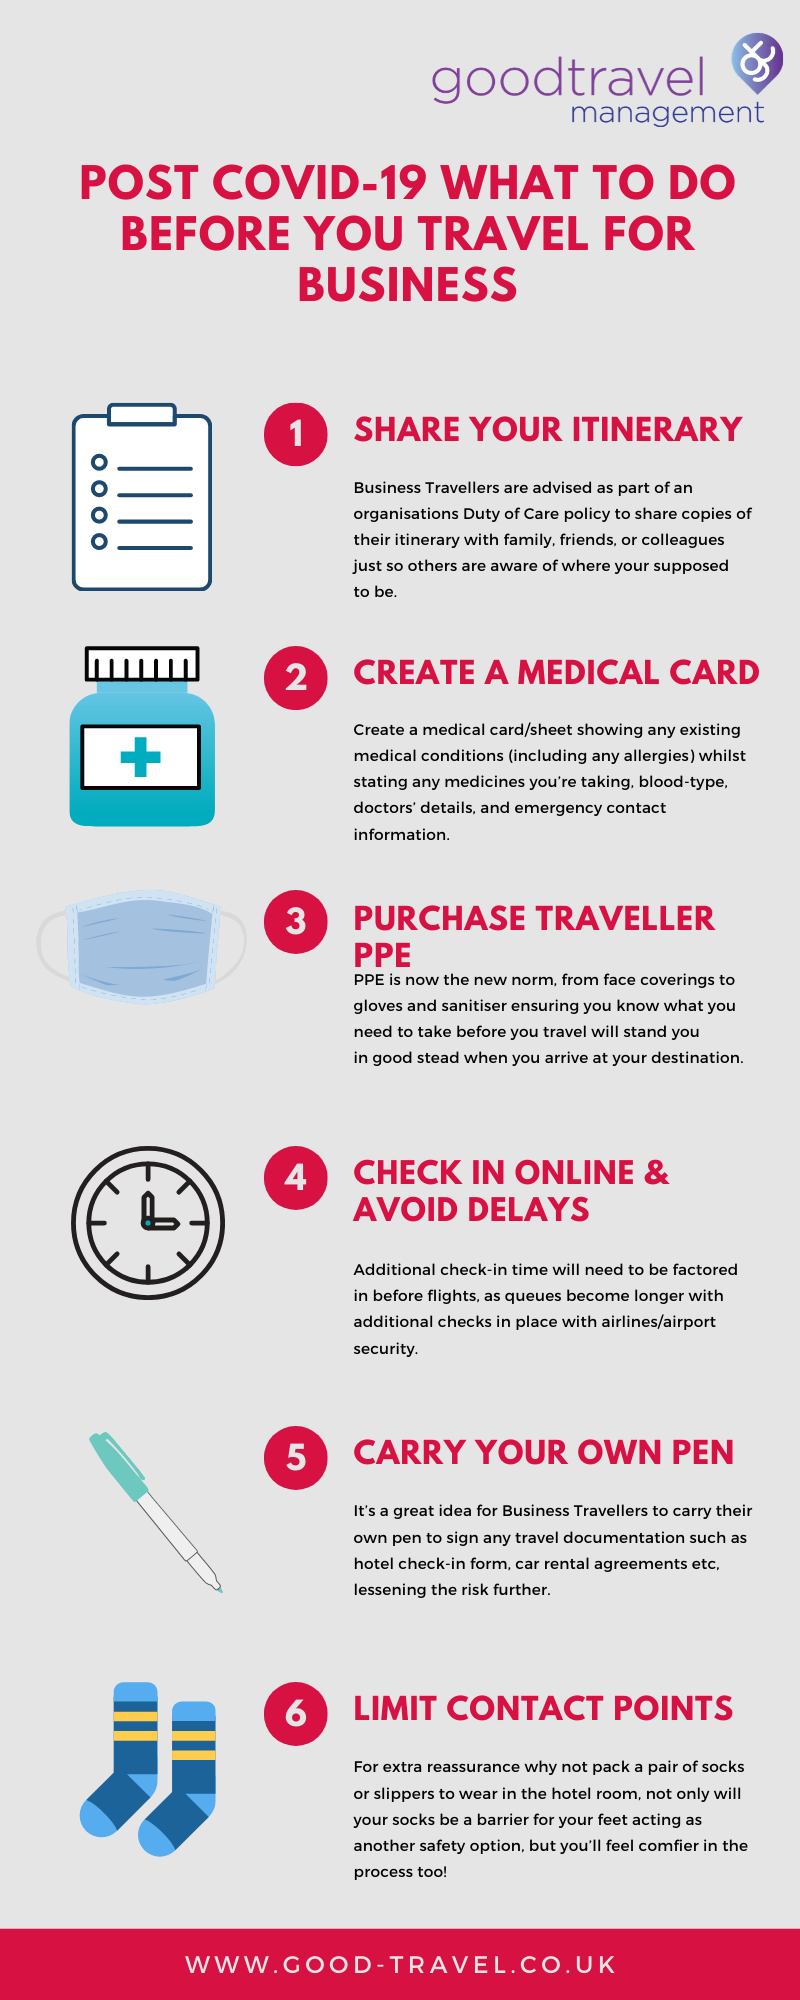 Post Covid-19 What to do before you travel for business (1)